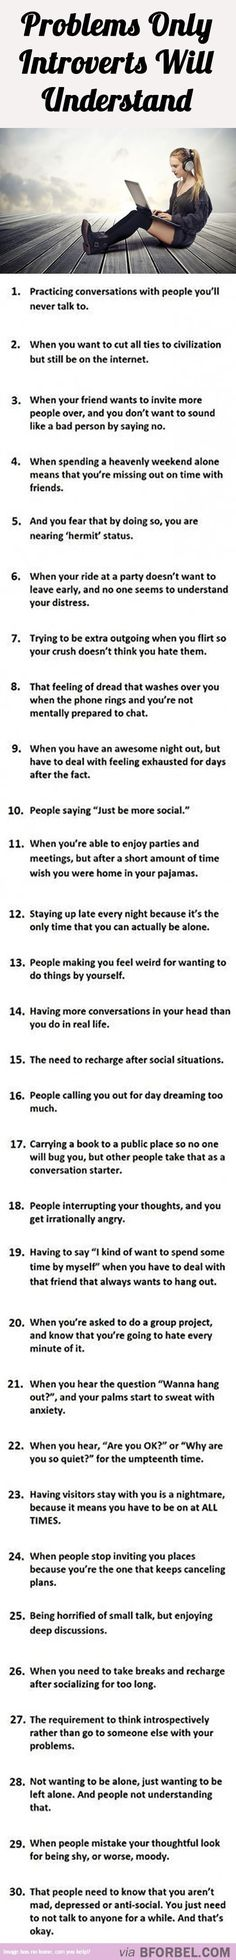 Most of these are dead on....some don't apply.....not a partier - 30 Problems Only Introverts Will Understand..